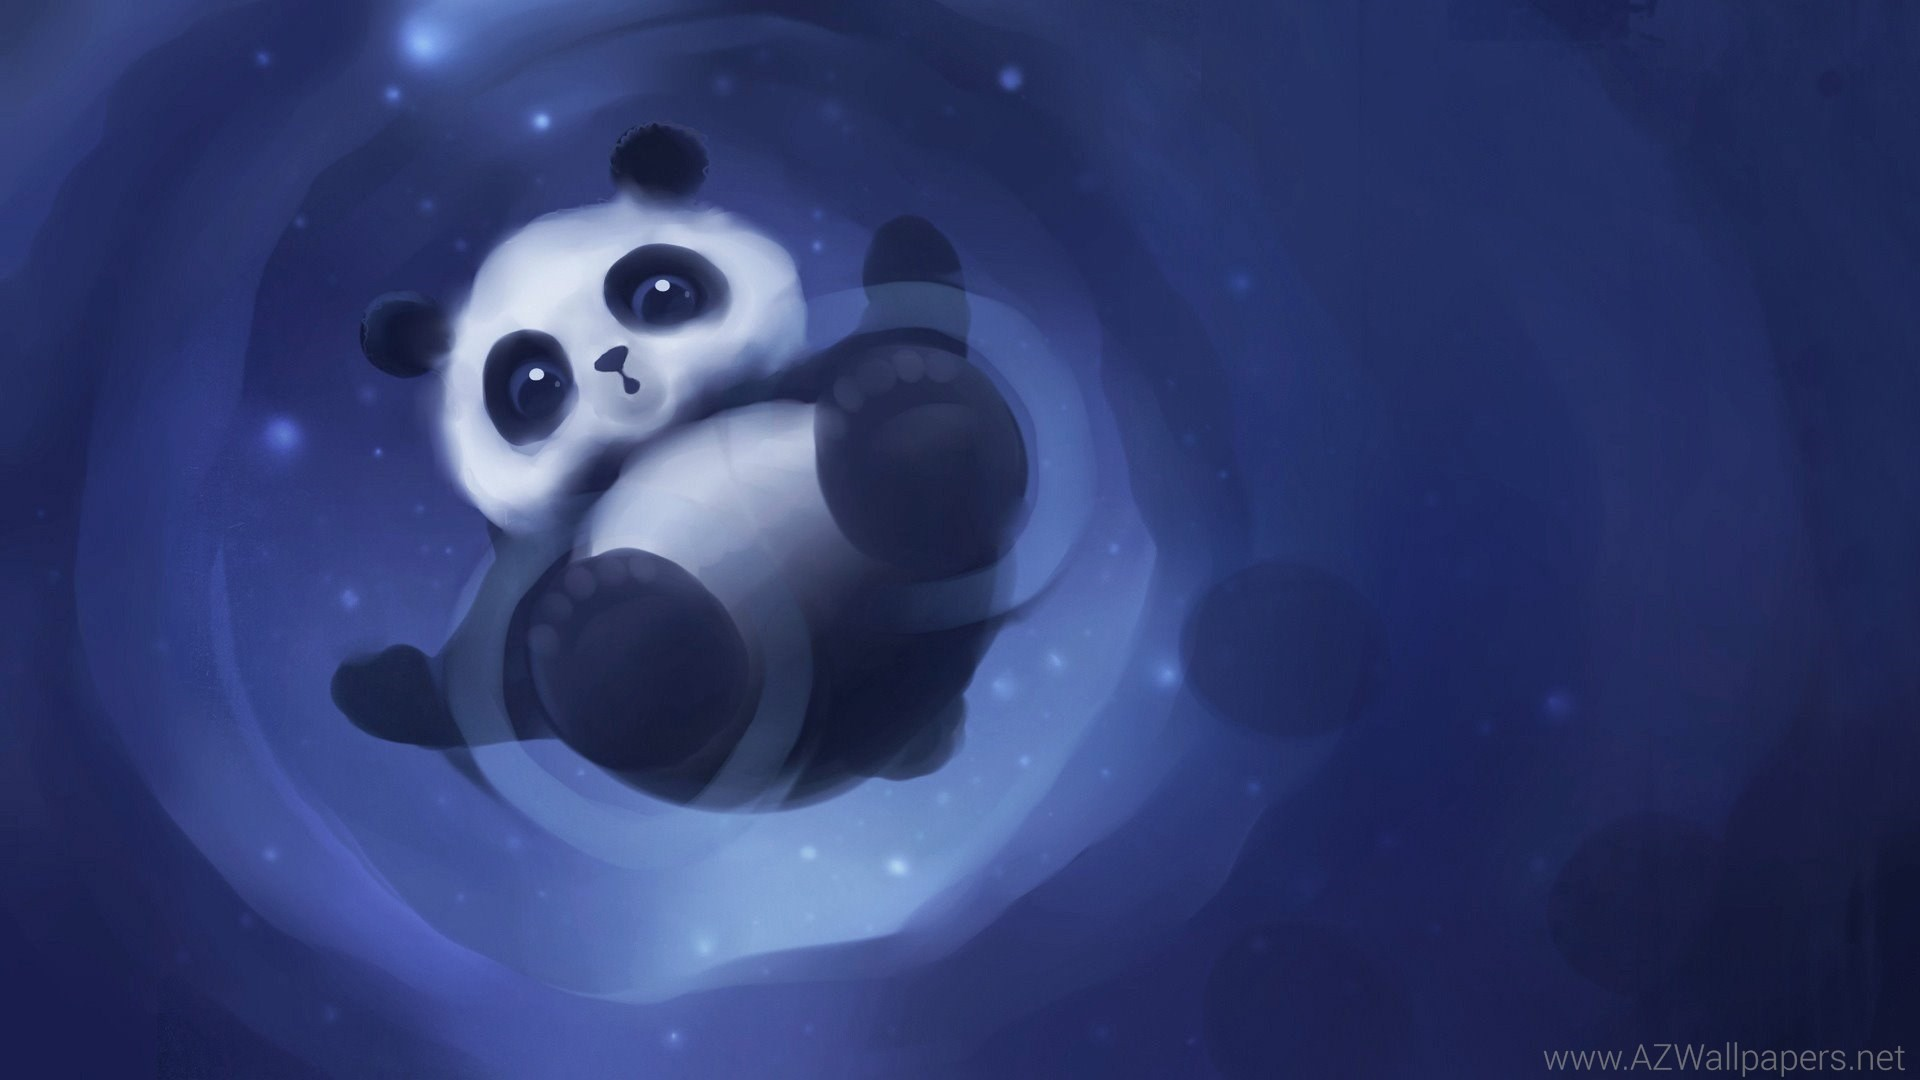 Panda Anime Wallpapers HD Attachment 9635 Amazing Wallpaperz